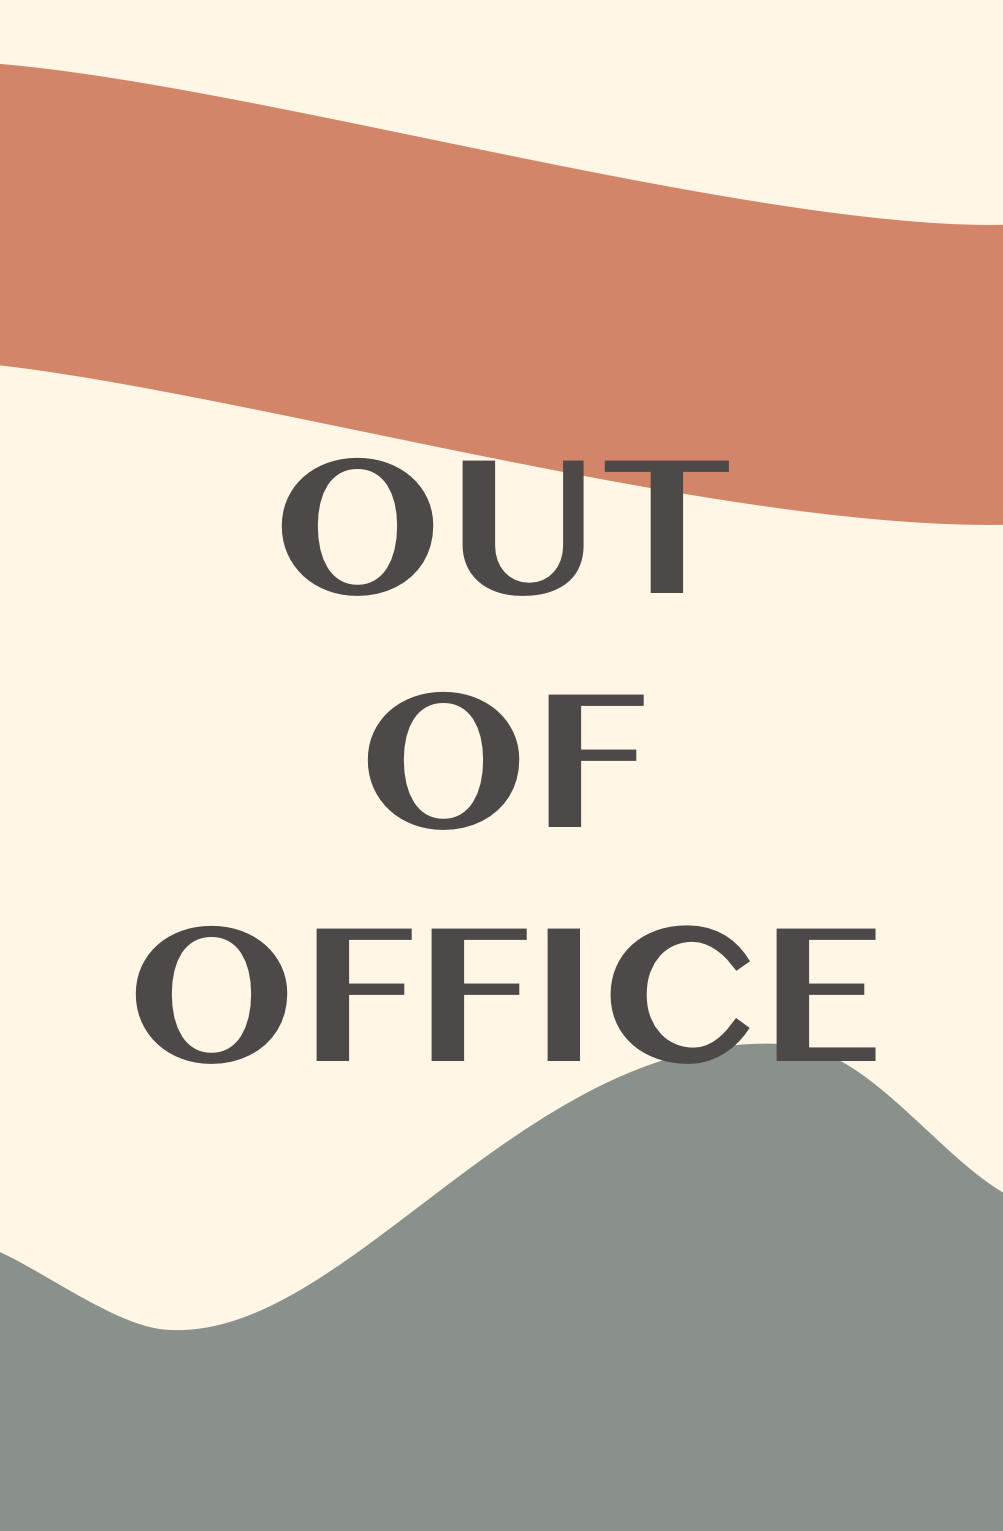 Out of Office: June 12 - 28th